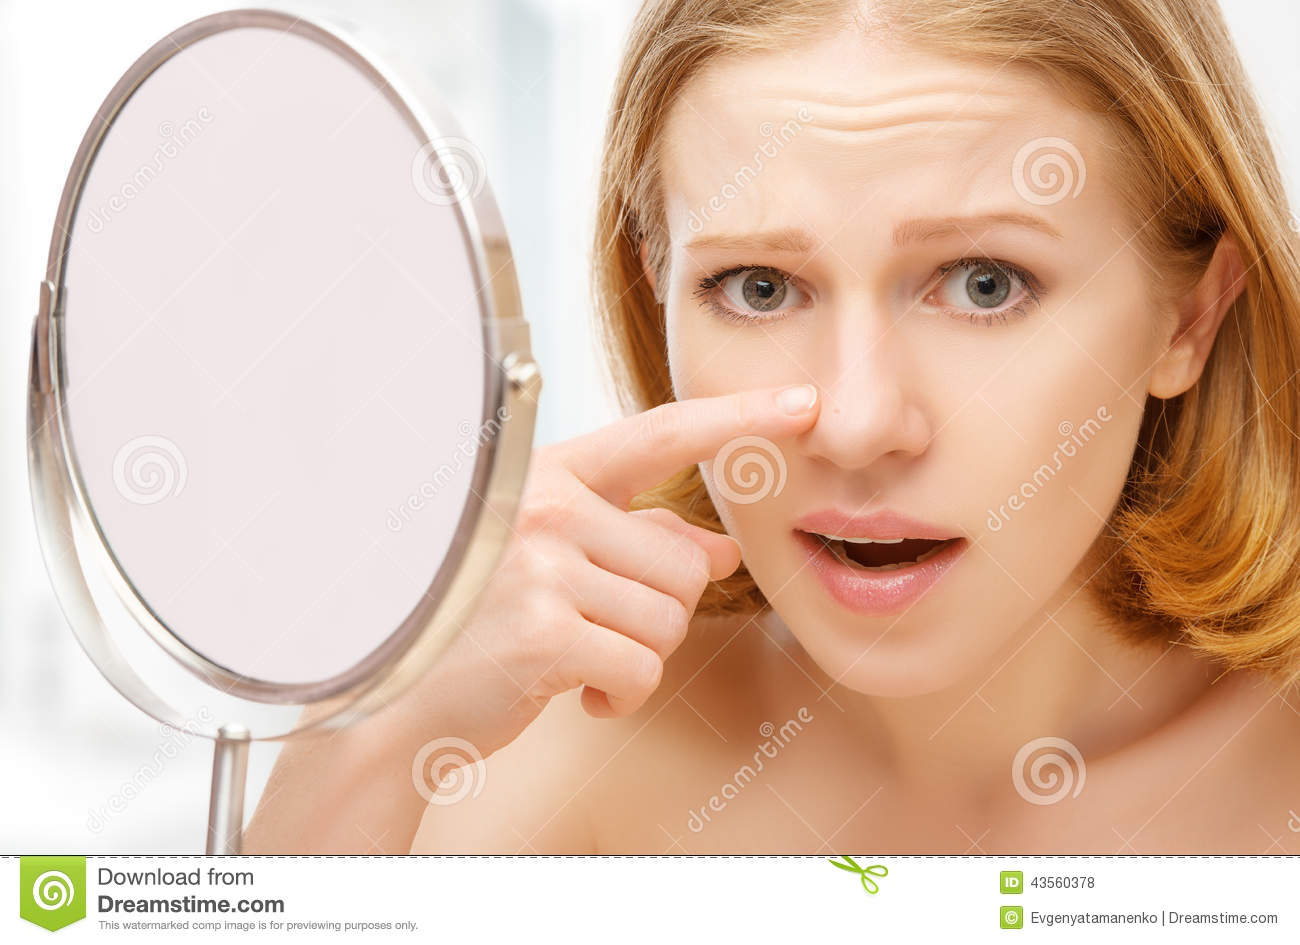 beautiful-healthy-woman-frightened-saw-mirror-acne-wrinkles-young-43560378.jpg